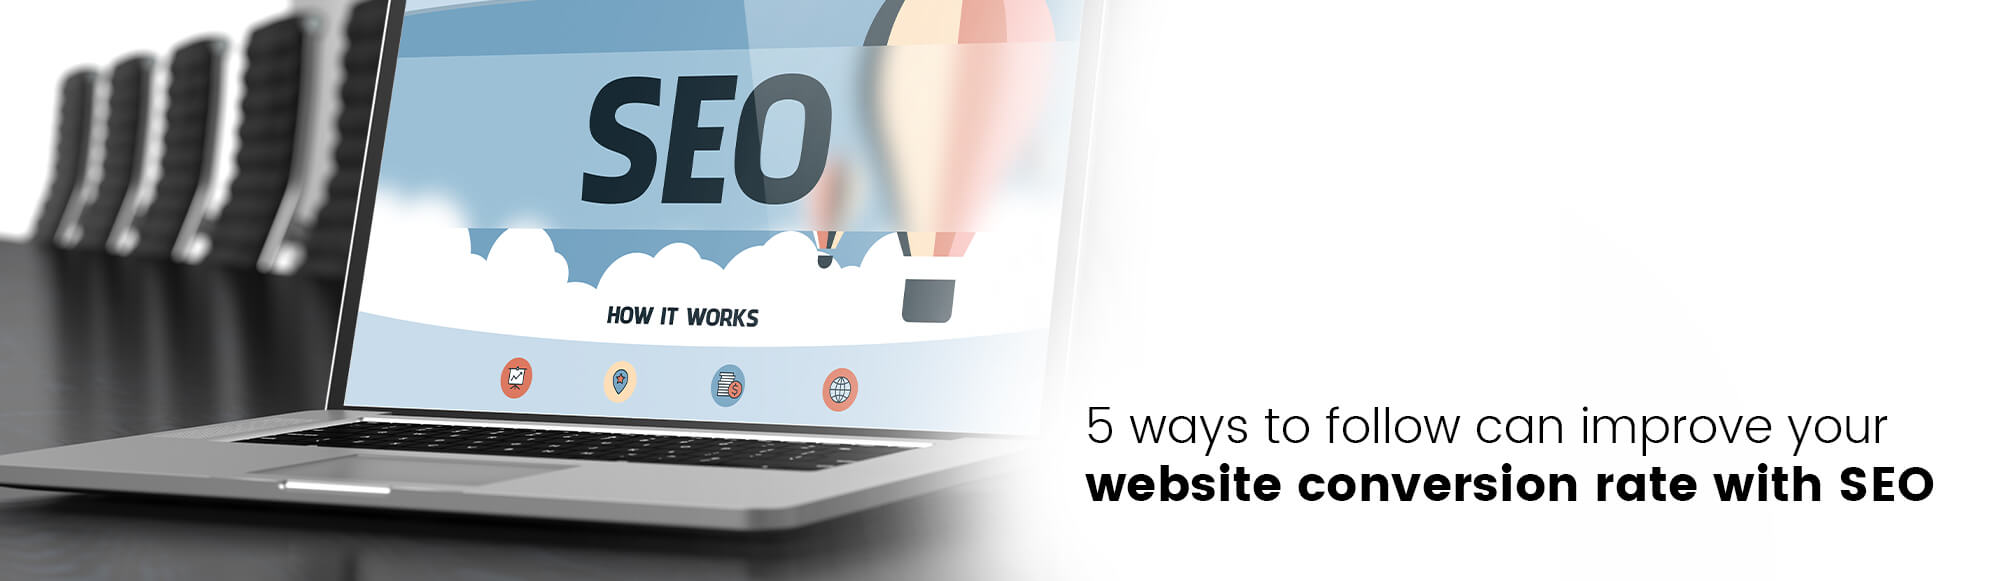 5 methods for increasing website conversion rates using SEO.